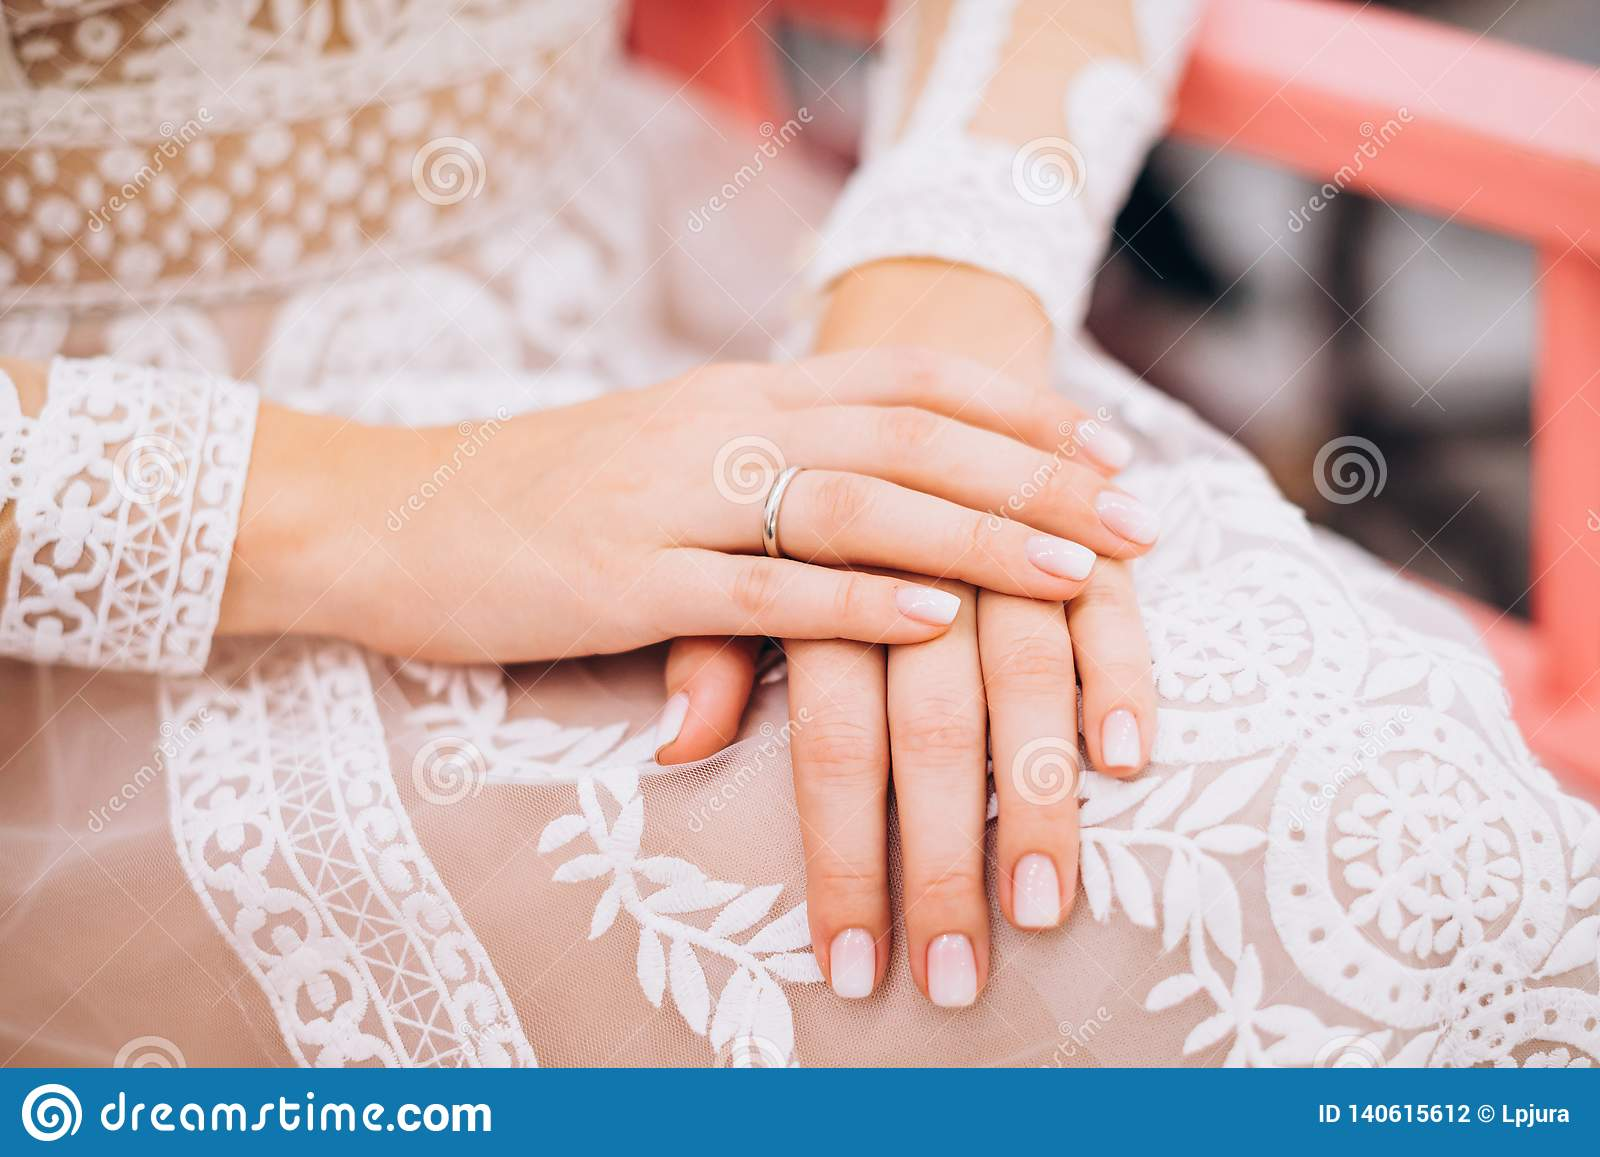 Wedding Ring On The Hand Of The Bride Lying On A Wedding Dress